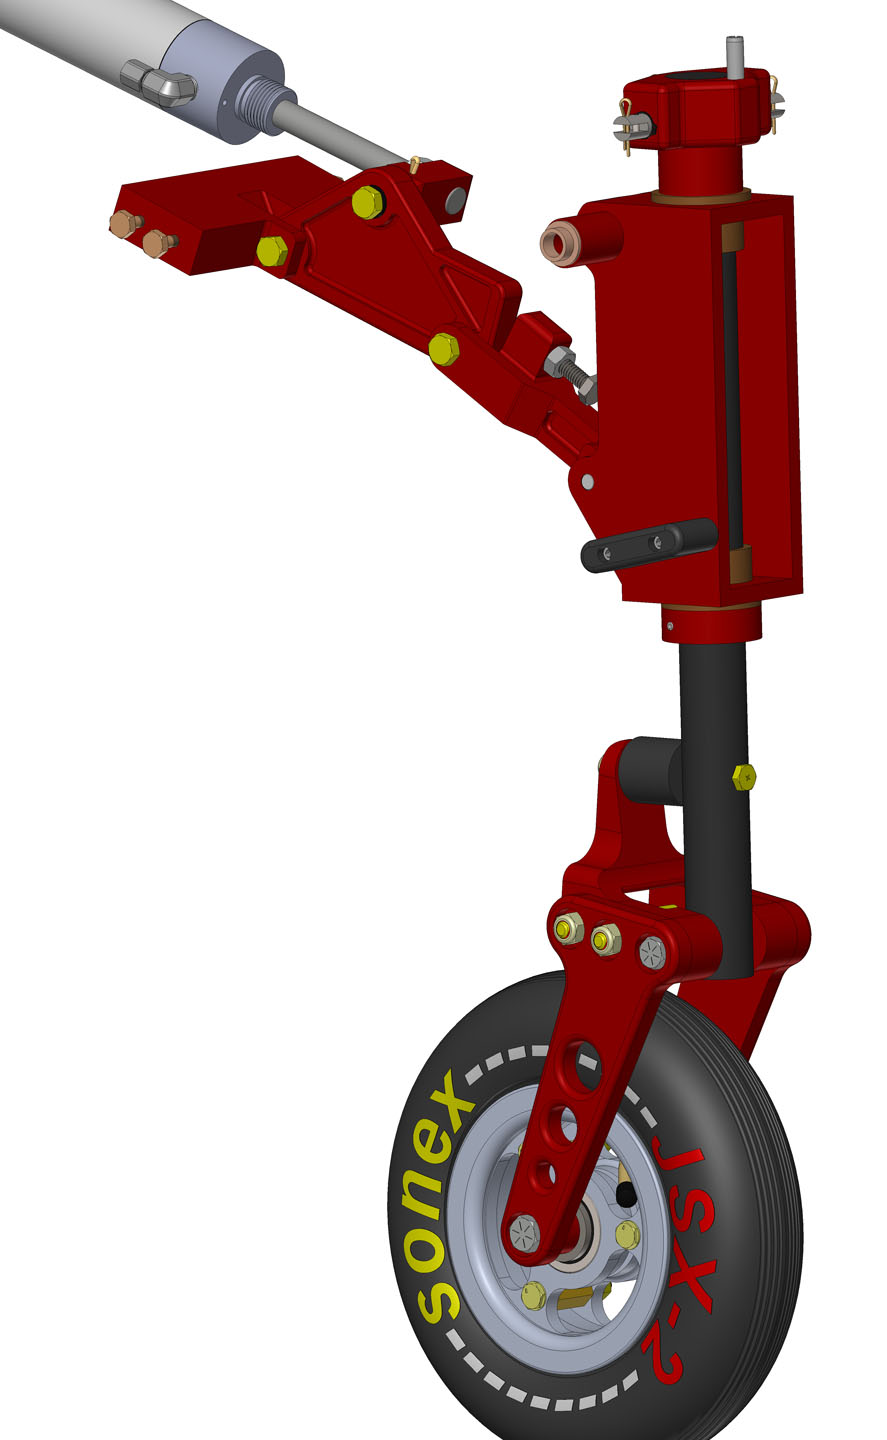 SubSonex Retractable Nose Gear